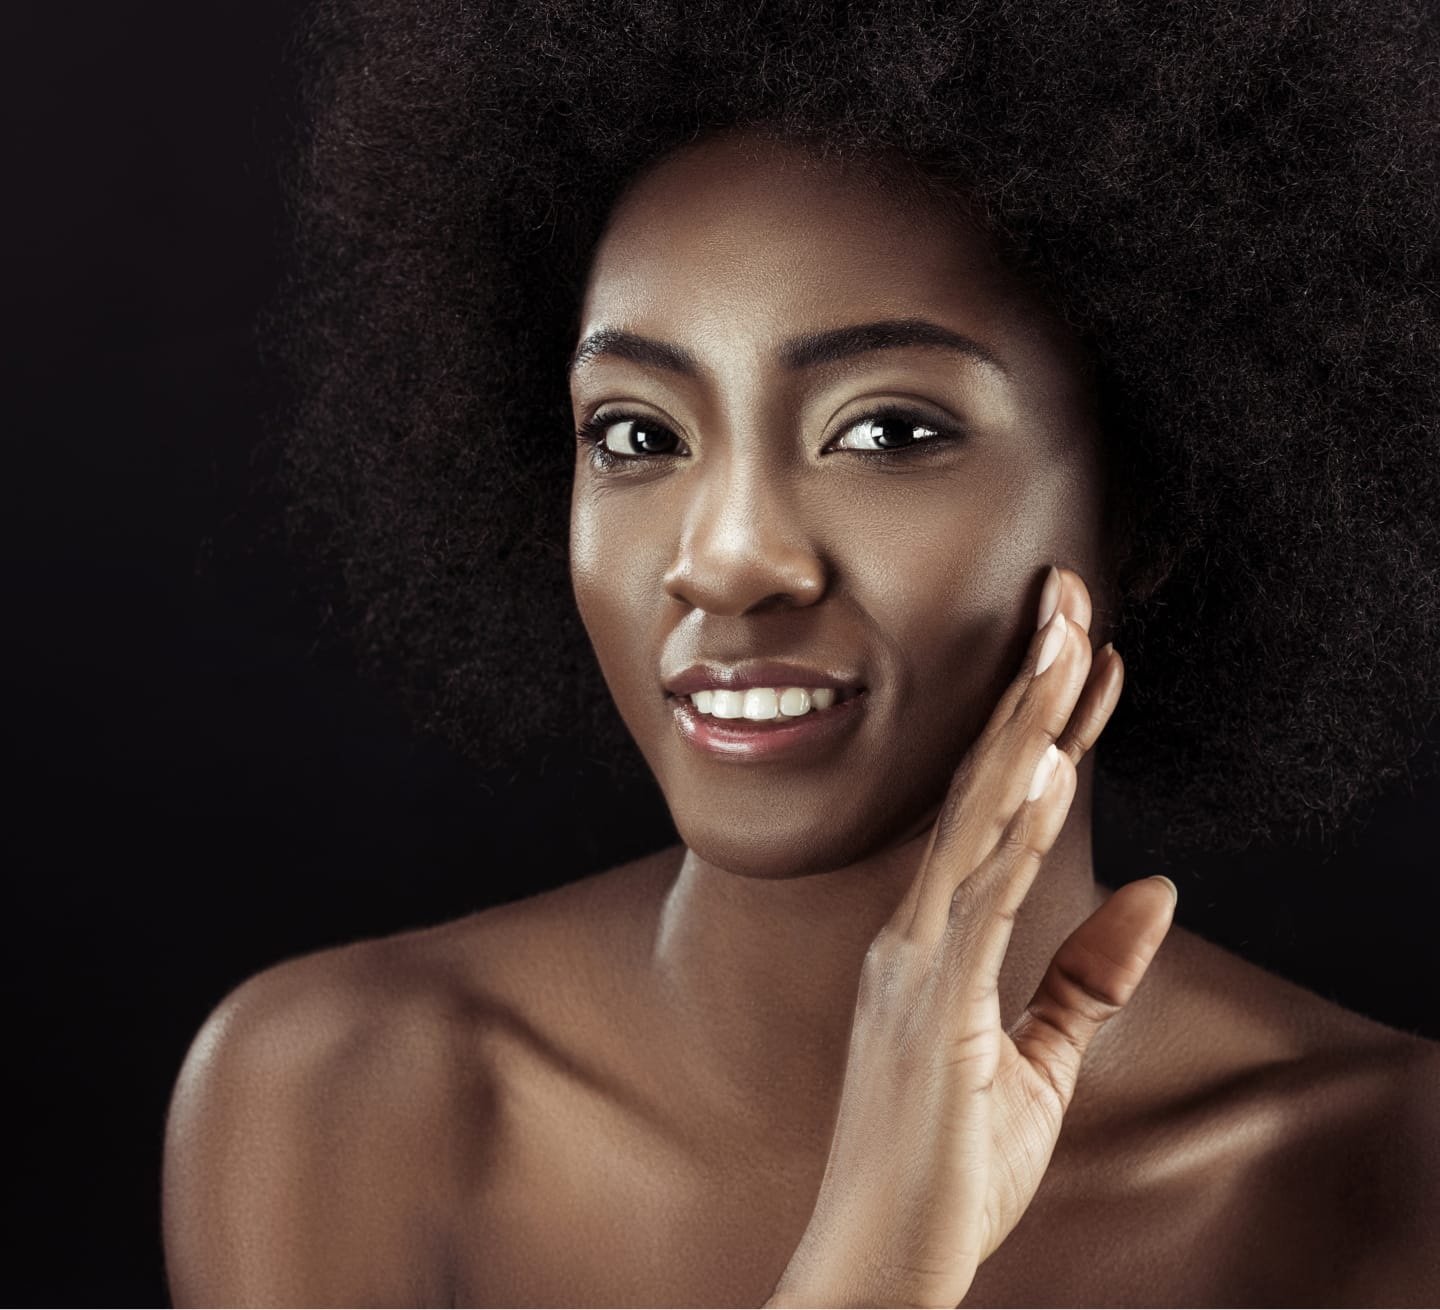 smiling model with face against hand